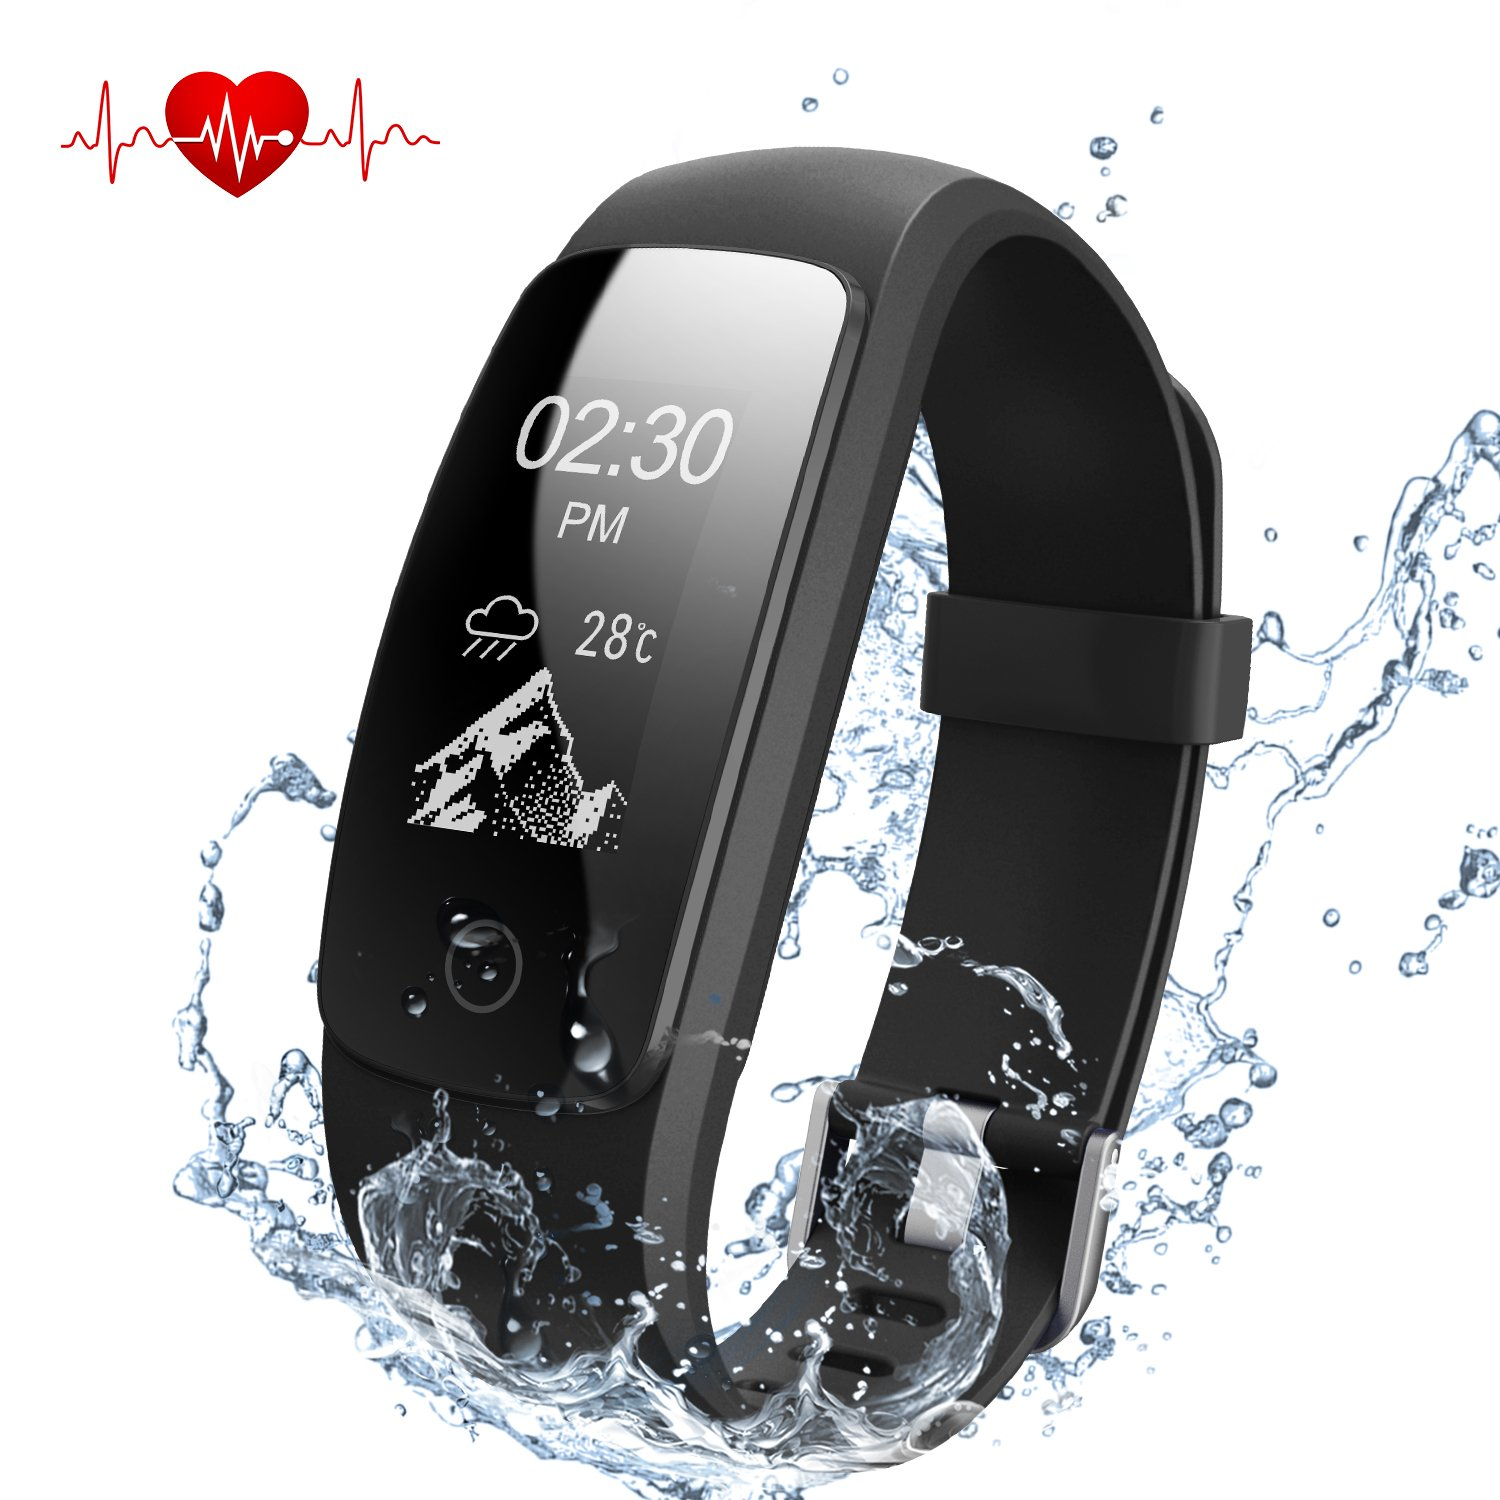 Dbpower Fitness Tracker With Heart Rate Monitor Smart Wristband F1 Plus Original Bracelet Color Screen Activity Ip67 Waterproof Step Sleep Calorie